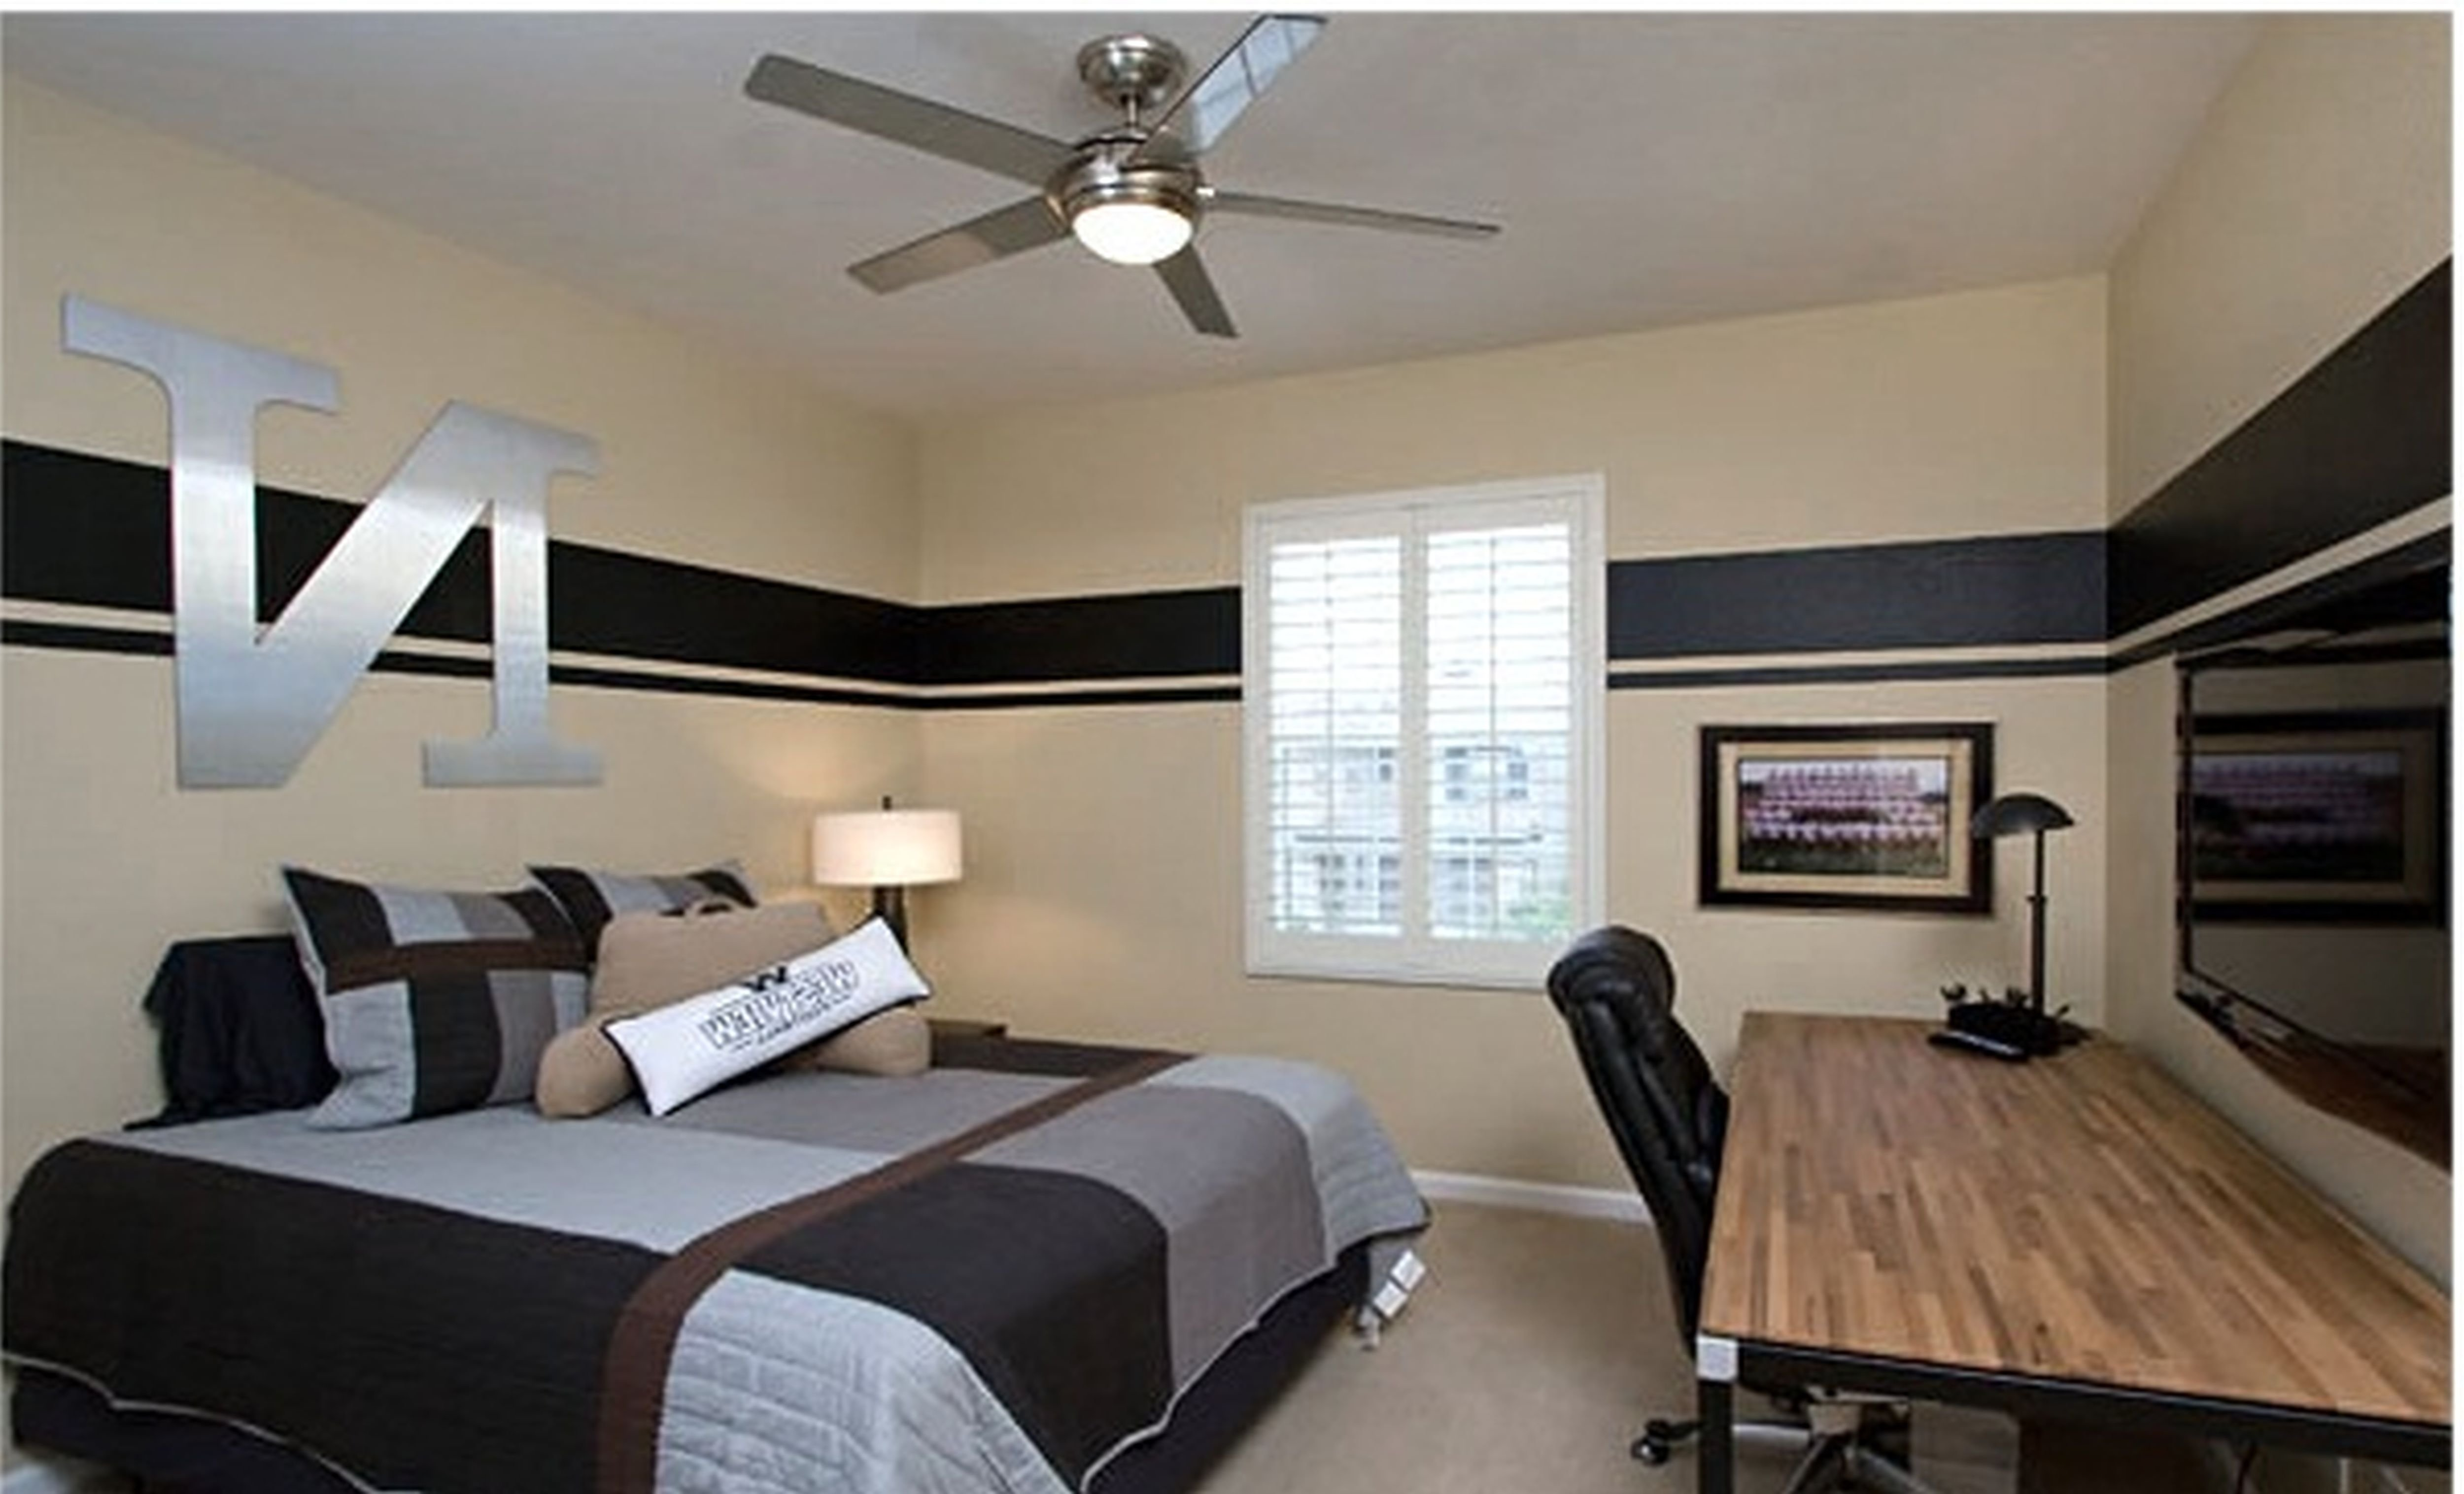 10 Most Recommended Dorm Room Decorating Ideas For Guys guys room ideas surripui 2020